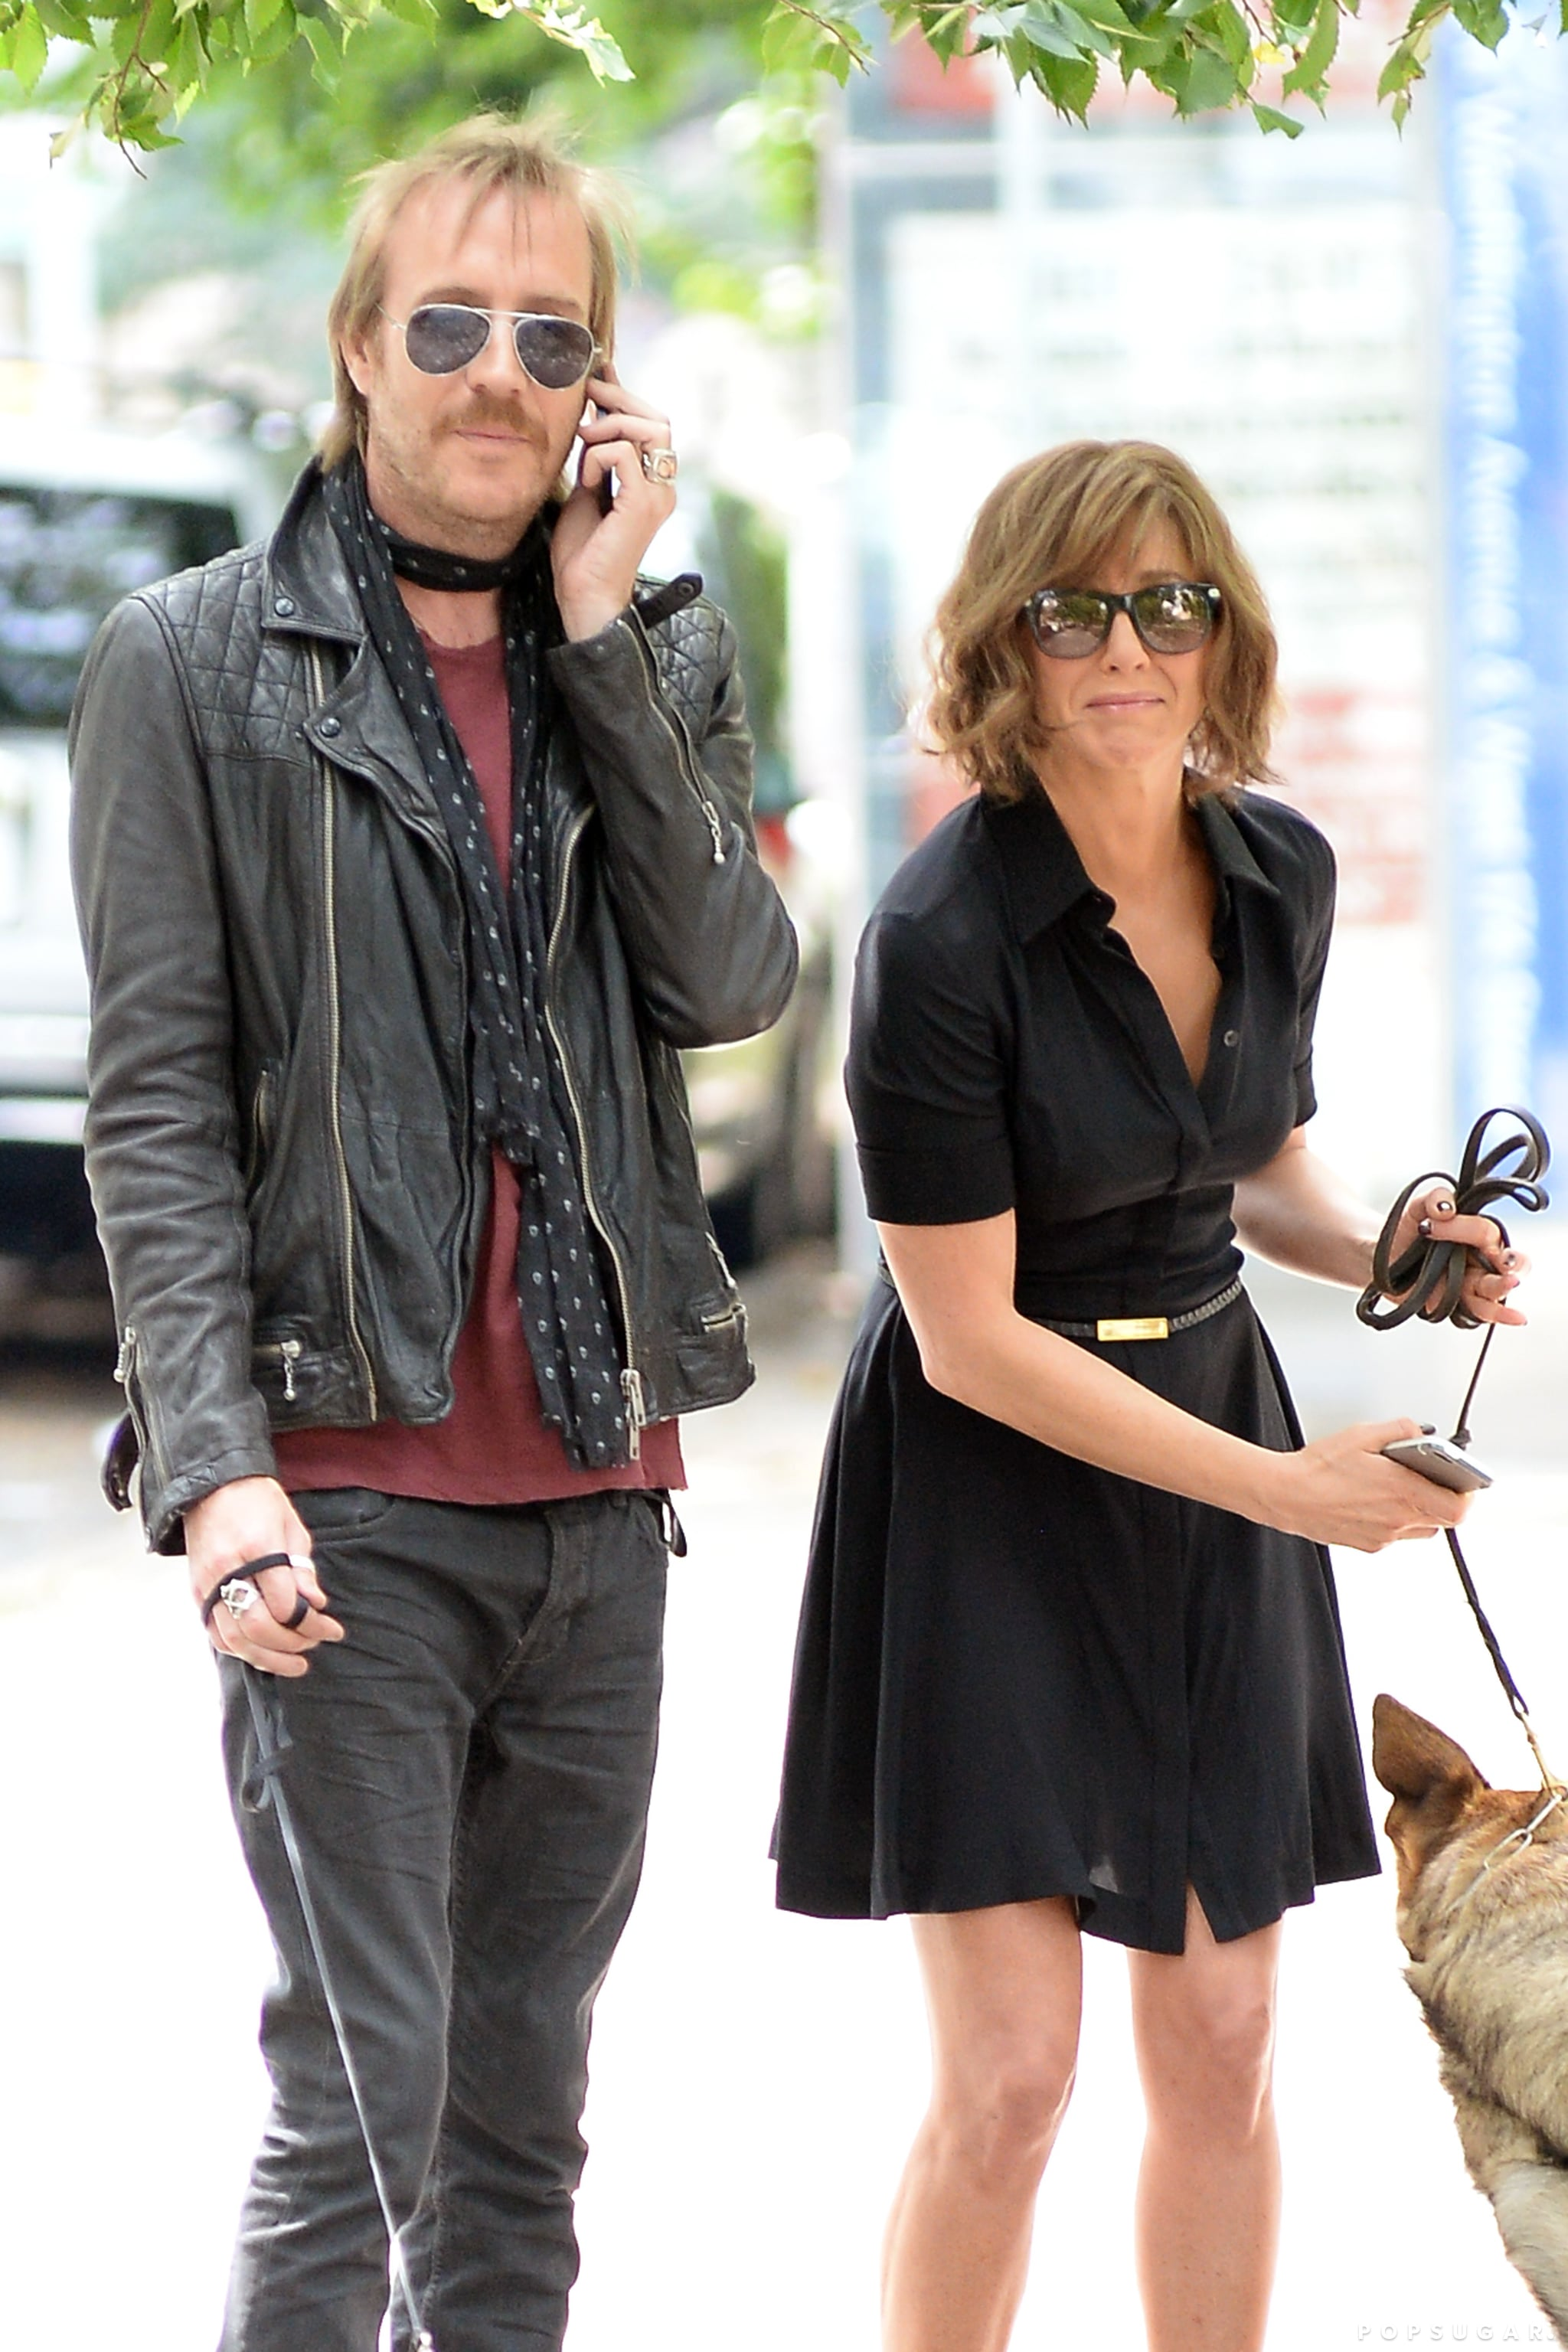 Jennifer Aniston filmed a scene with Rhys Ifans in NYC on July 31.